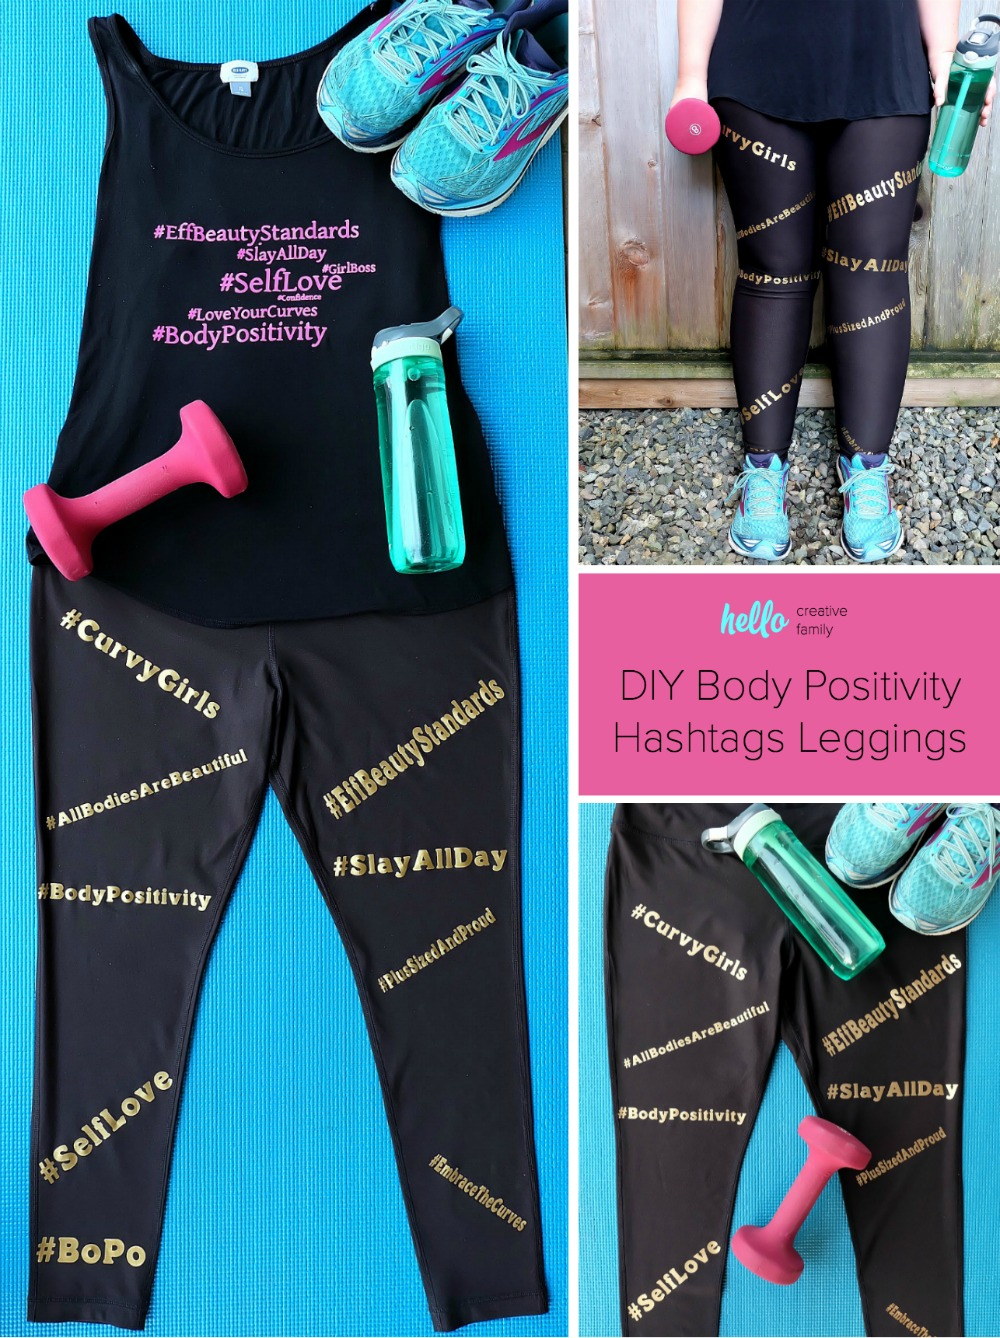 Embrace the curves, love your body, and encourage others to feel the self love with these awesome DIY Body Positive Hashtags Leggings. Perfect for plus sized fitness fashion, this easy project is fun and playful. Made using the Cricut Explore or Cricut Maker and ultra stretchy Cricut SportFlex Iron-On. Free cut file. #ad #CricutStrongBond #CricutMade #Cricut